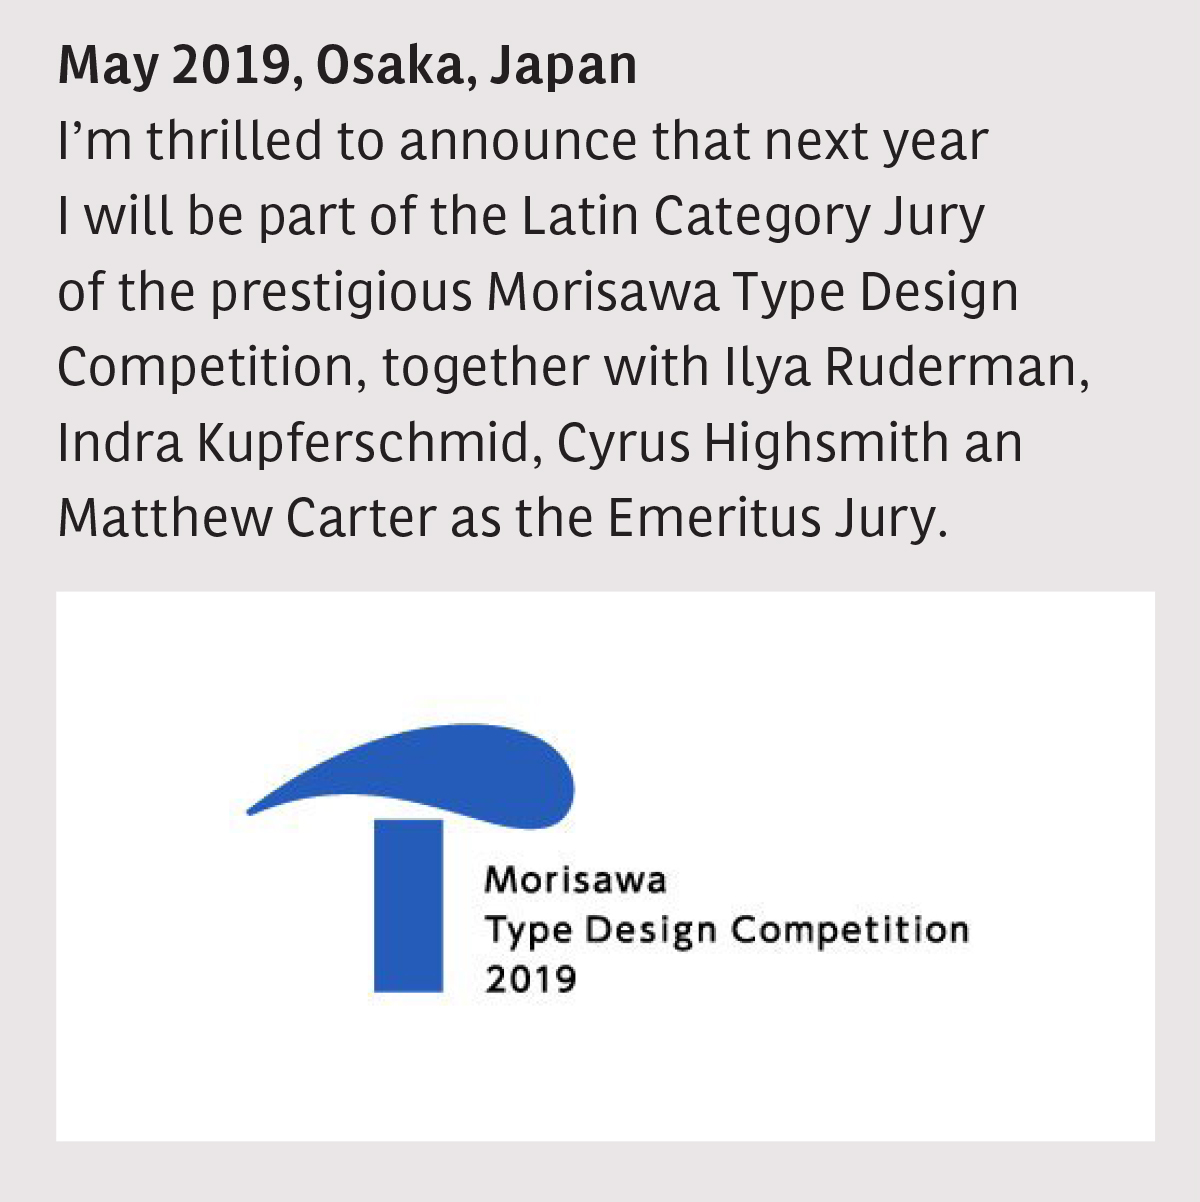 Jury: Morisawa Type Design Competition 2019